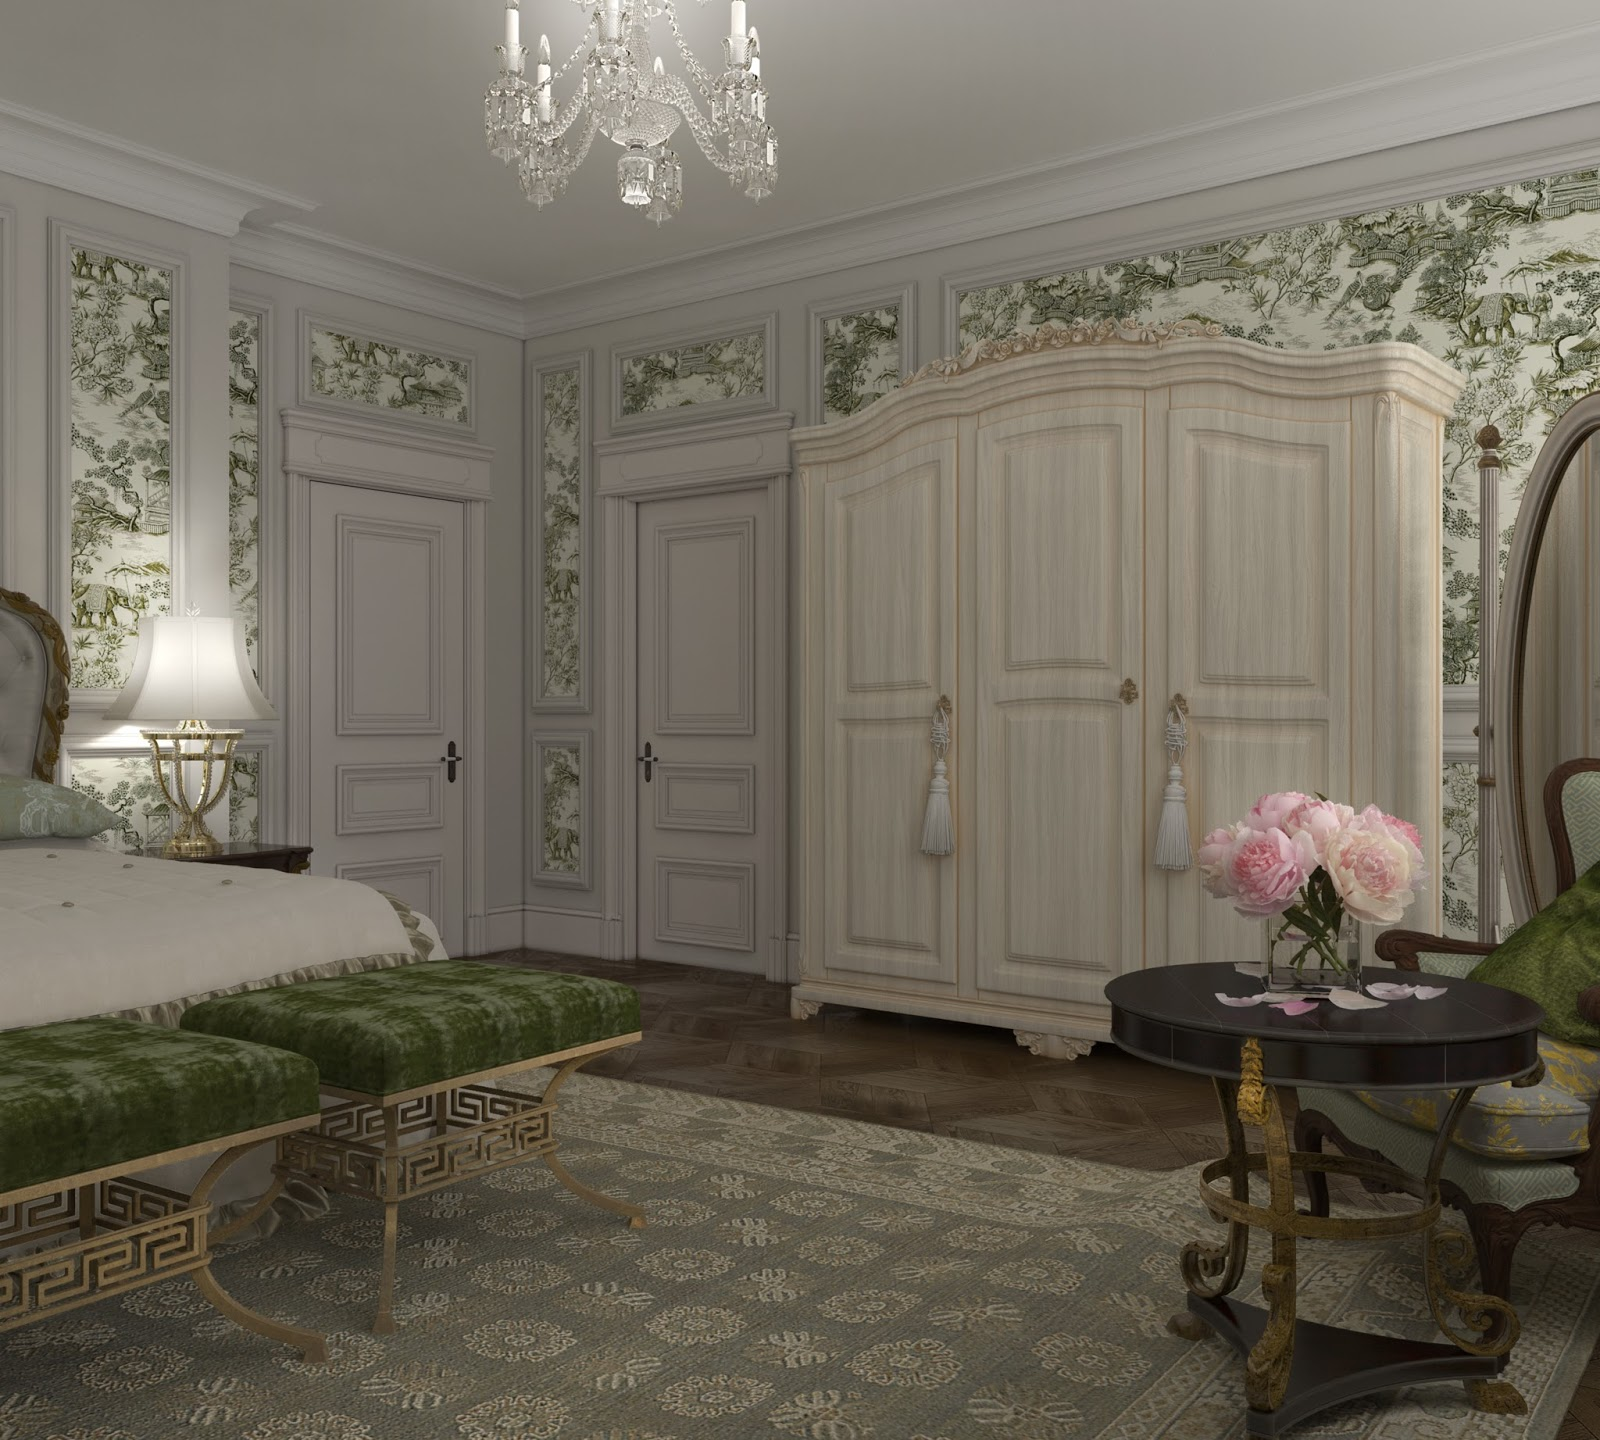 Darya girina interior design march 2015 - Darya Girina Interior Design Interior Design Of Lux Apartments Of The Bariatinsky Palace Reconstruction Of Historical Interiors Adapted For The Current